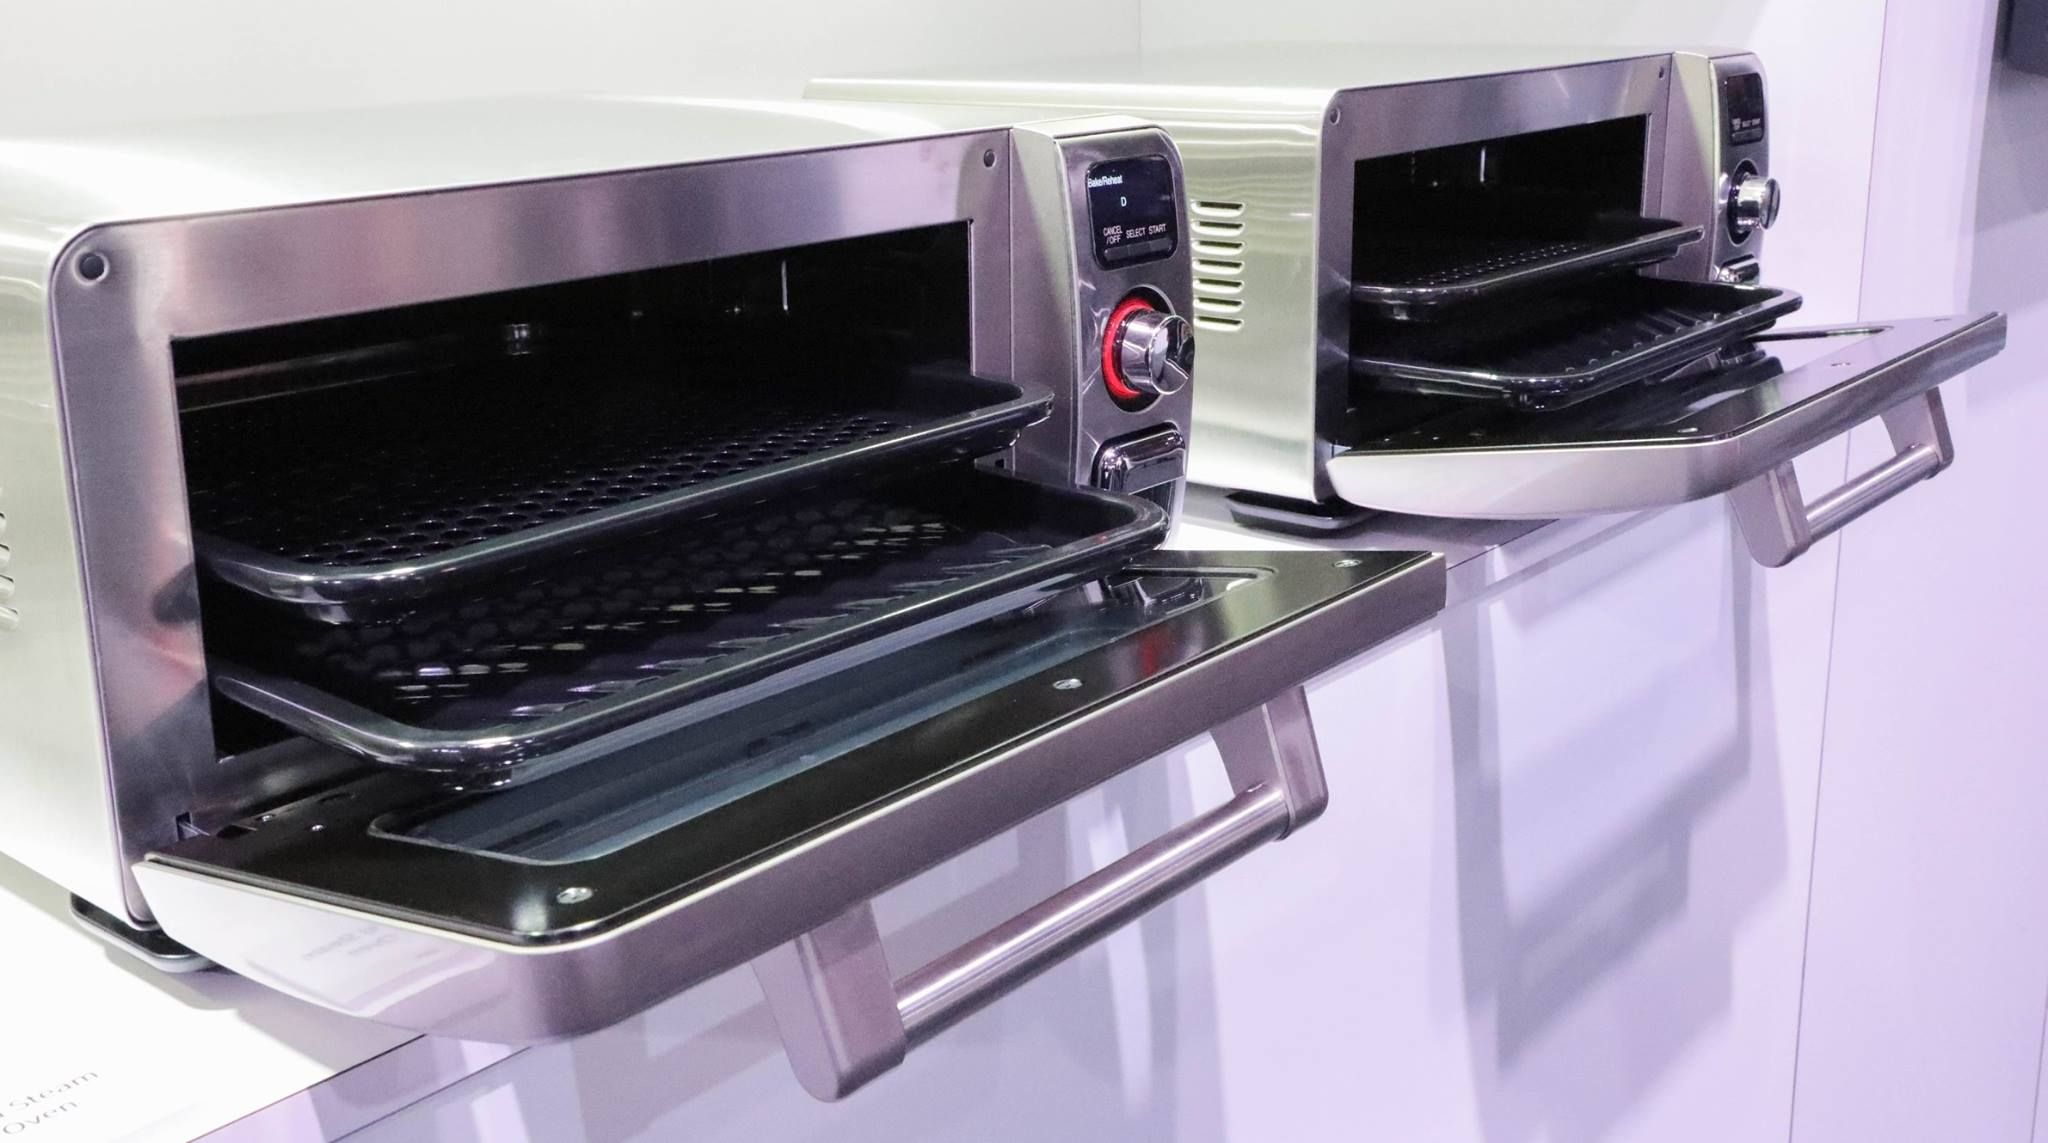 The Sharp Superheated Steam Countertop Oven Is The Start Of A